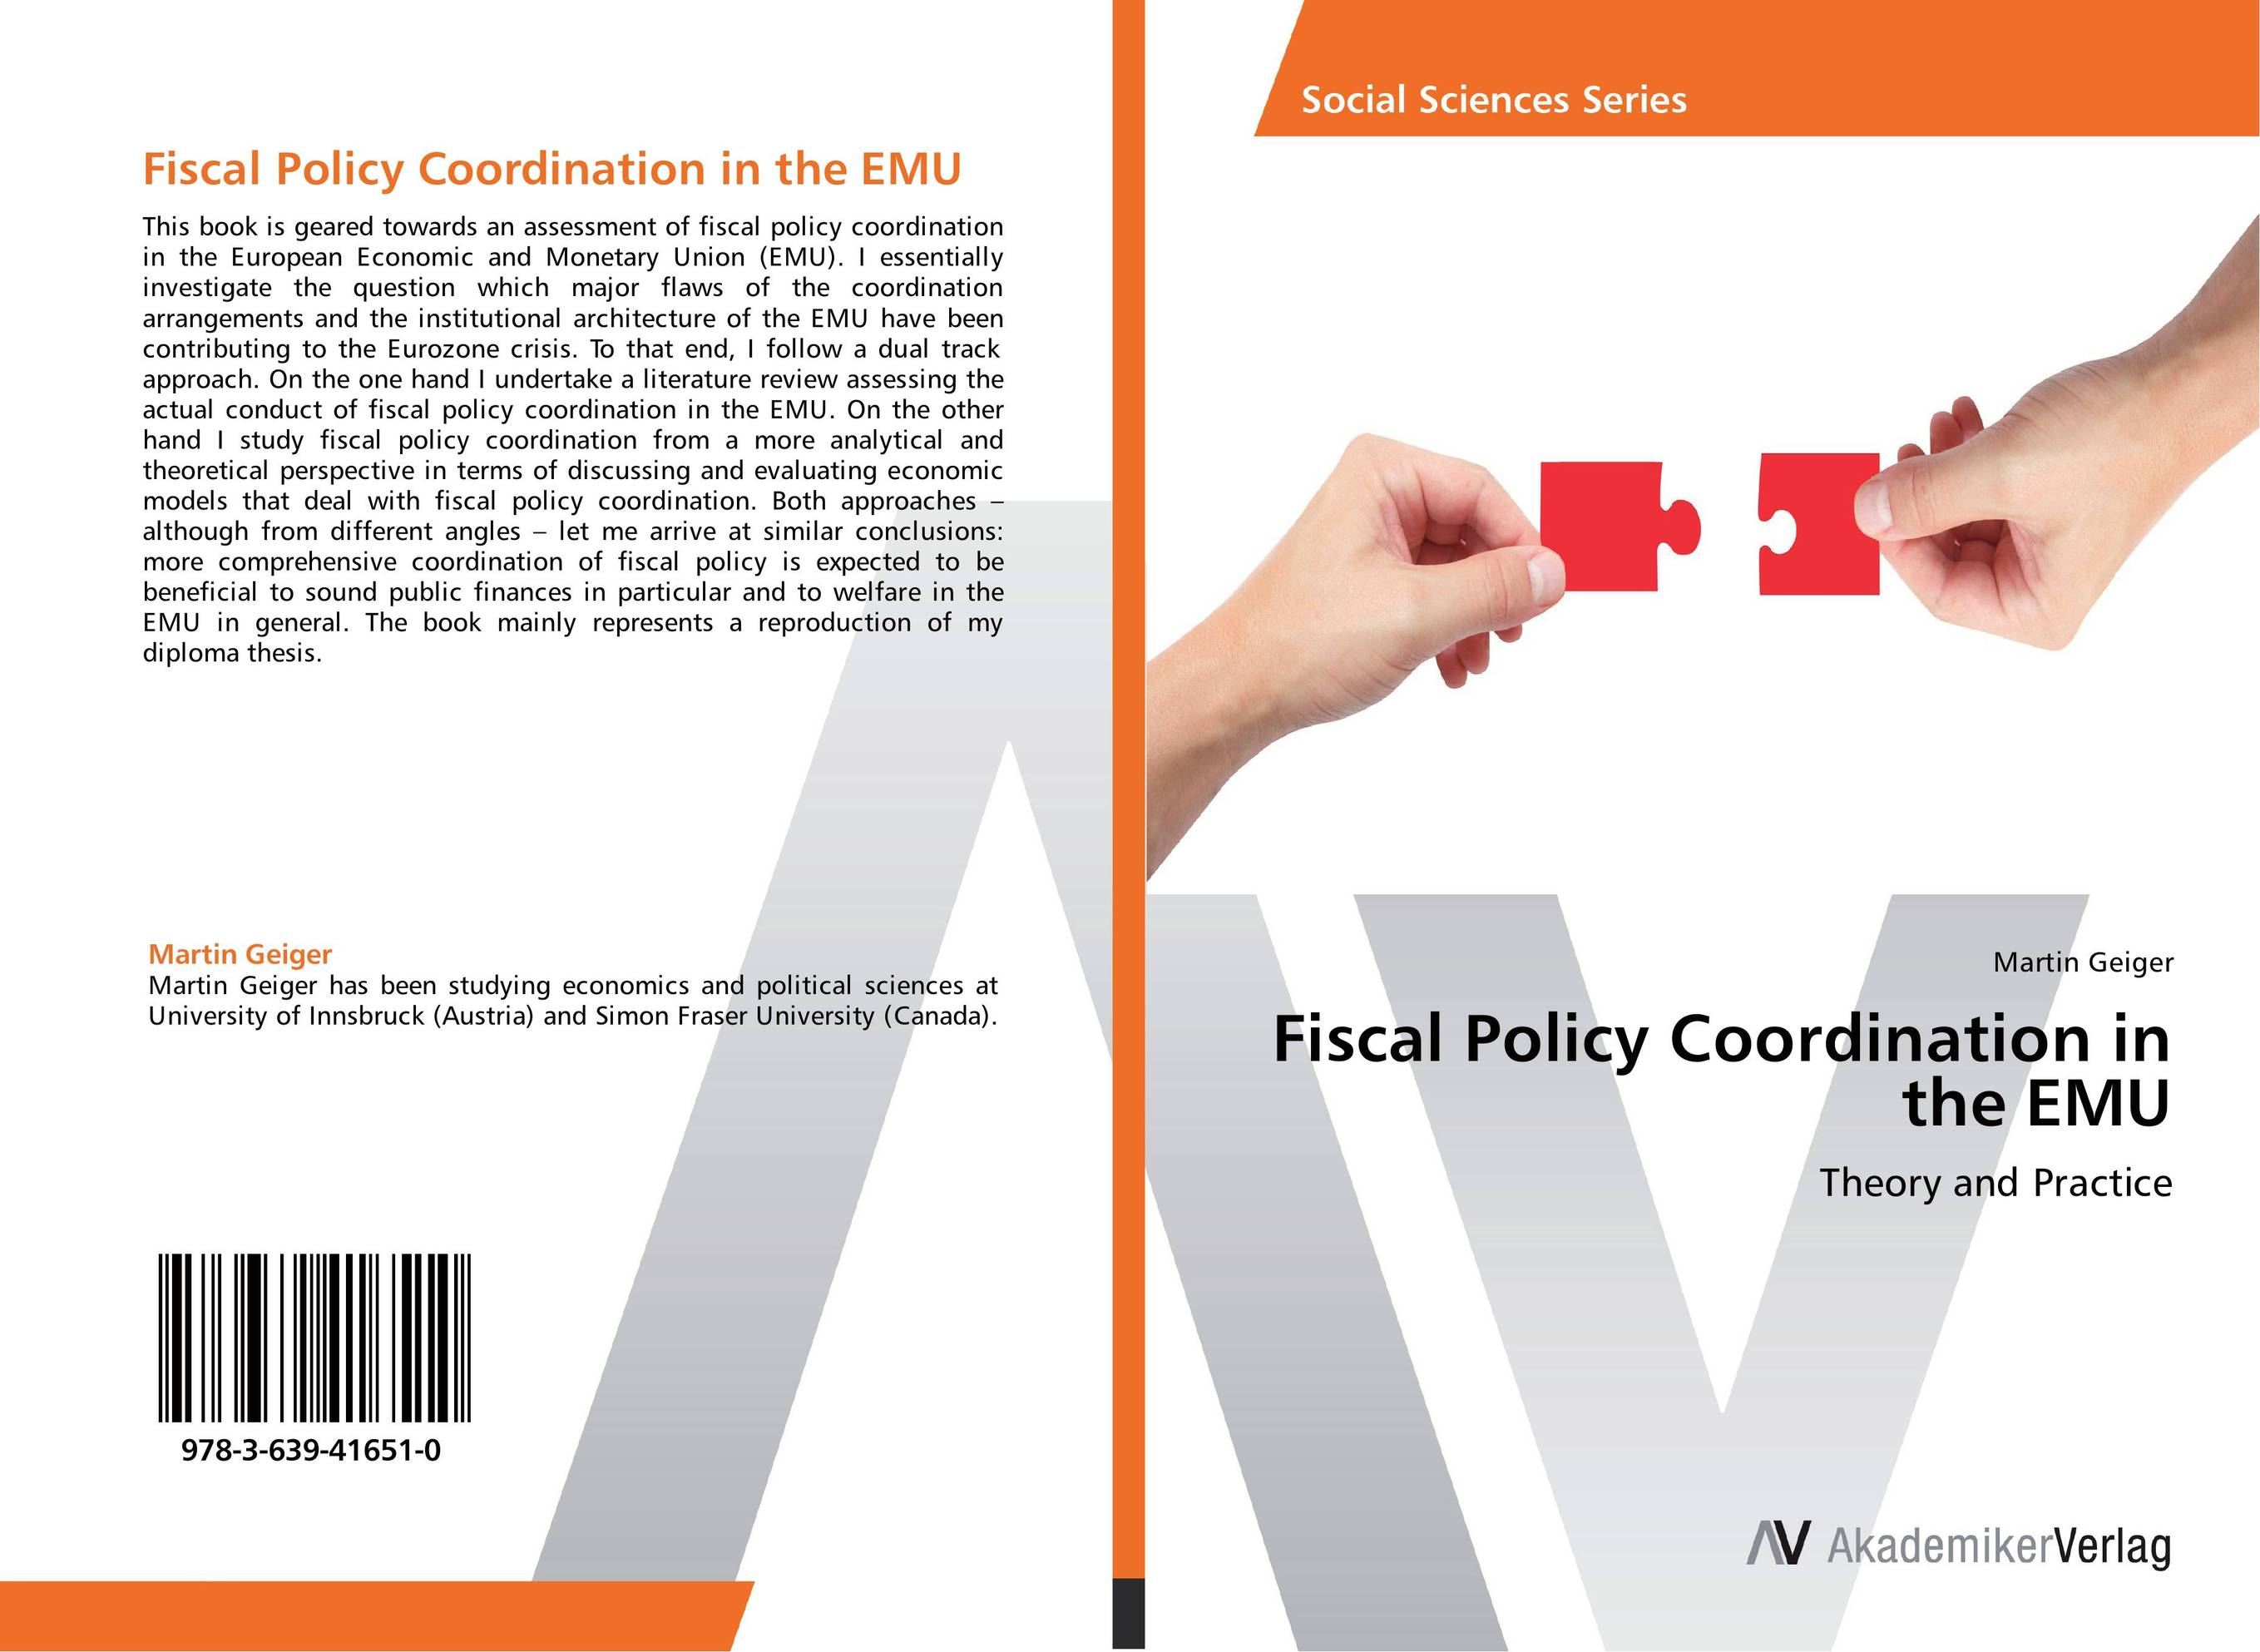 Fiscal Policy Coordination in the EMU